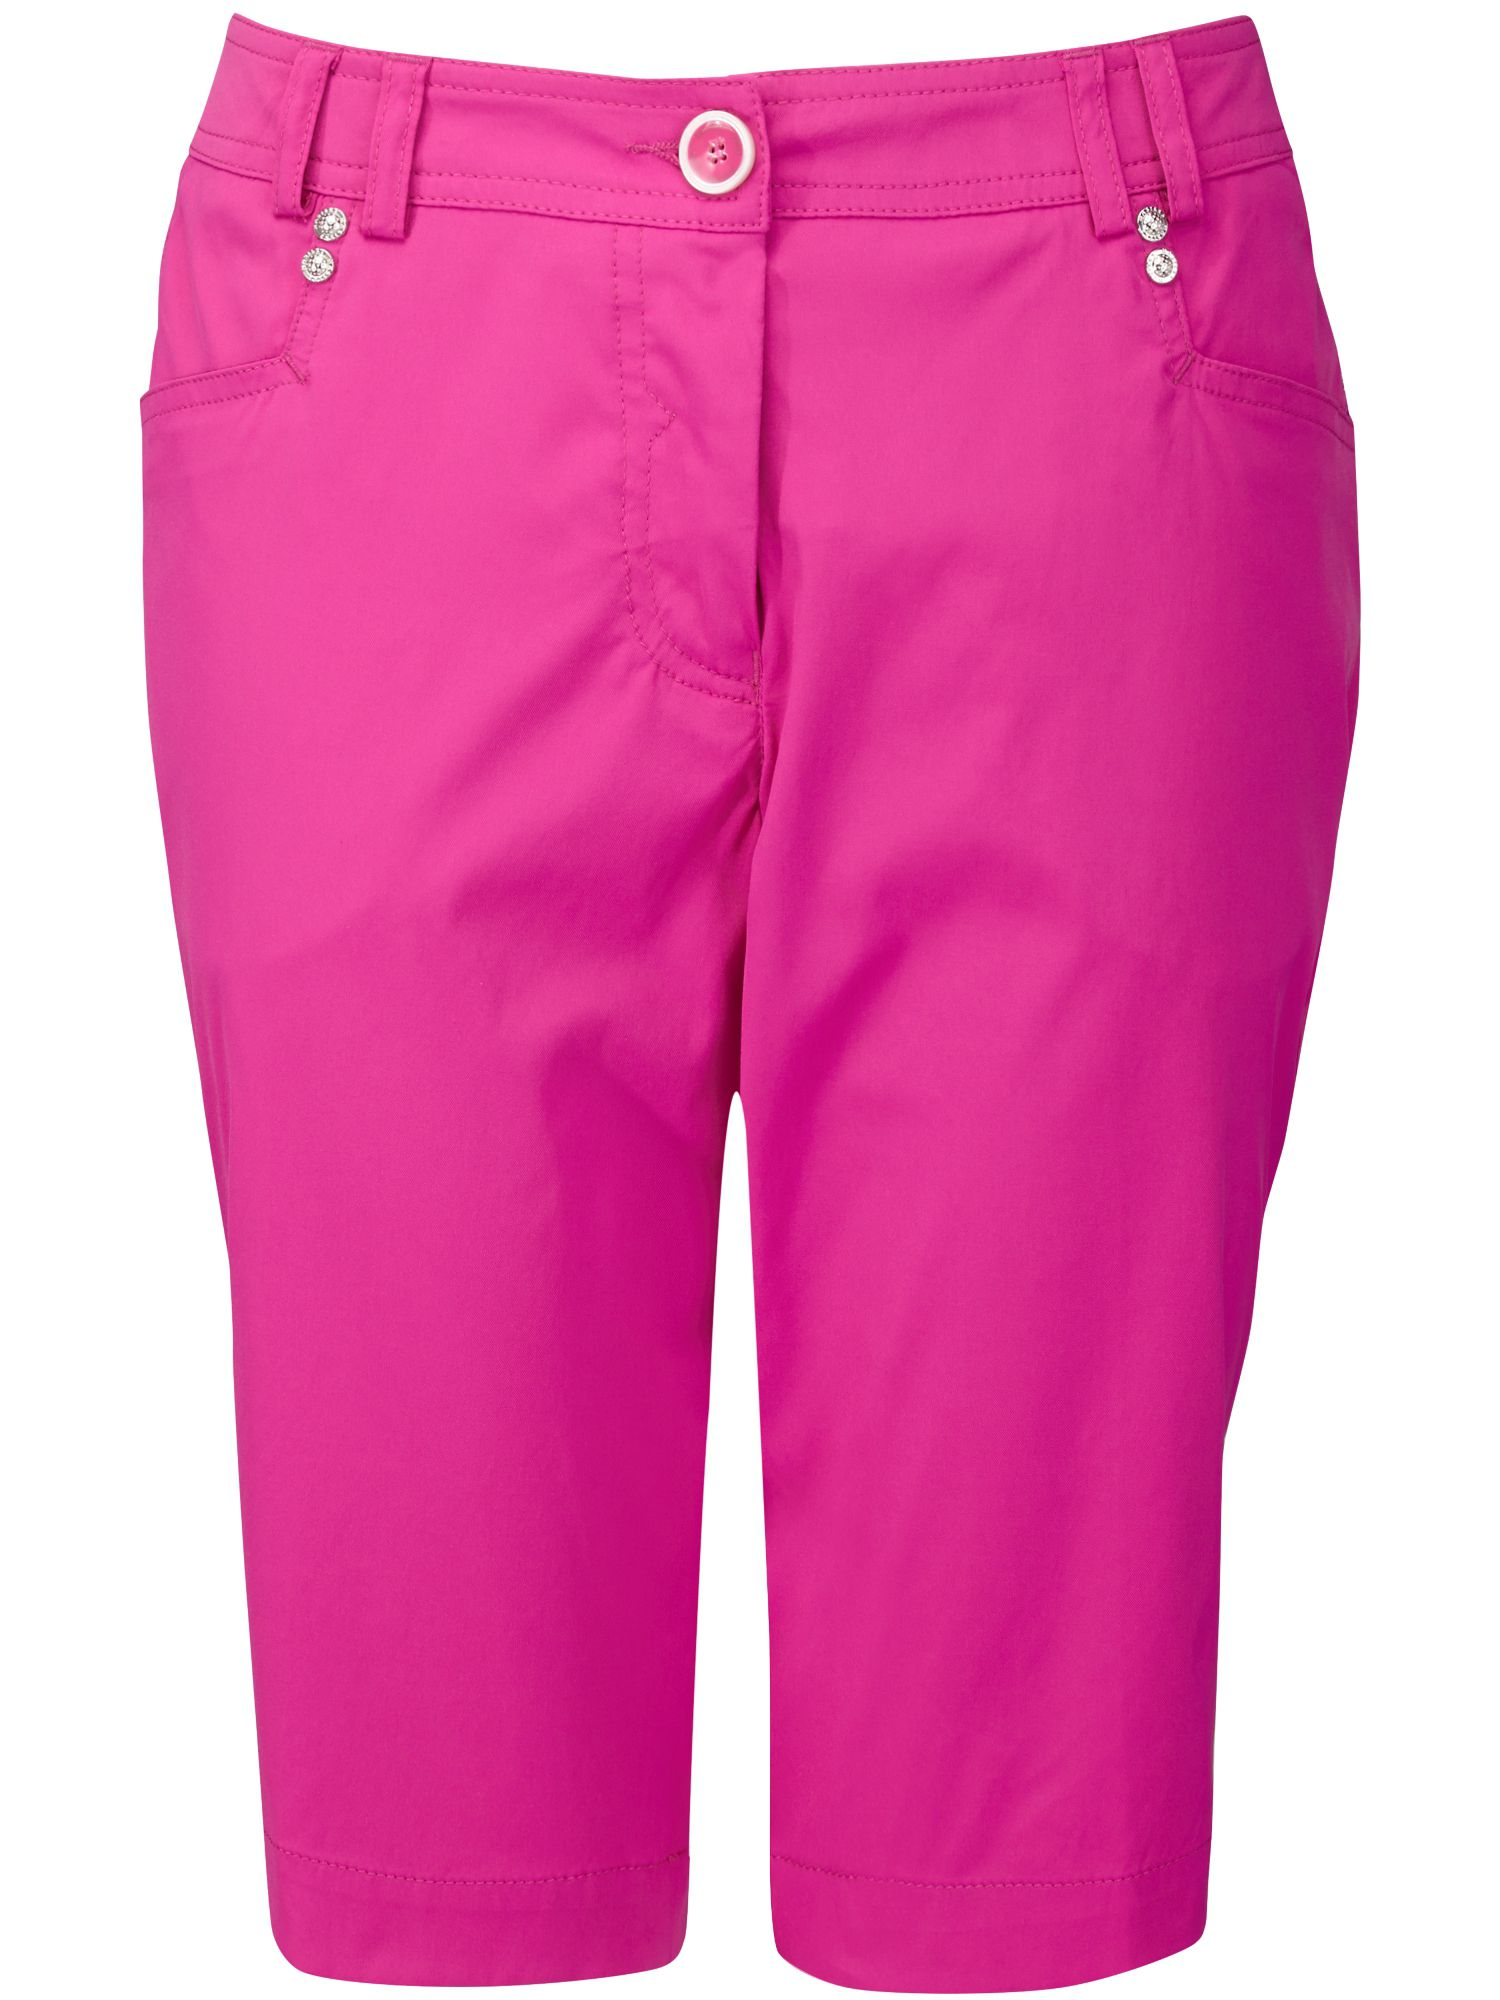 MG bermuda shorts